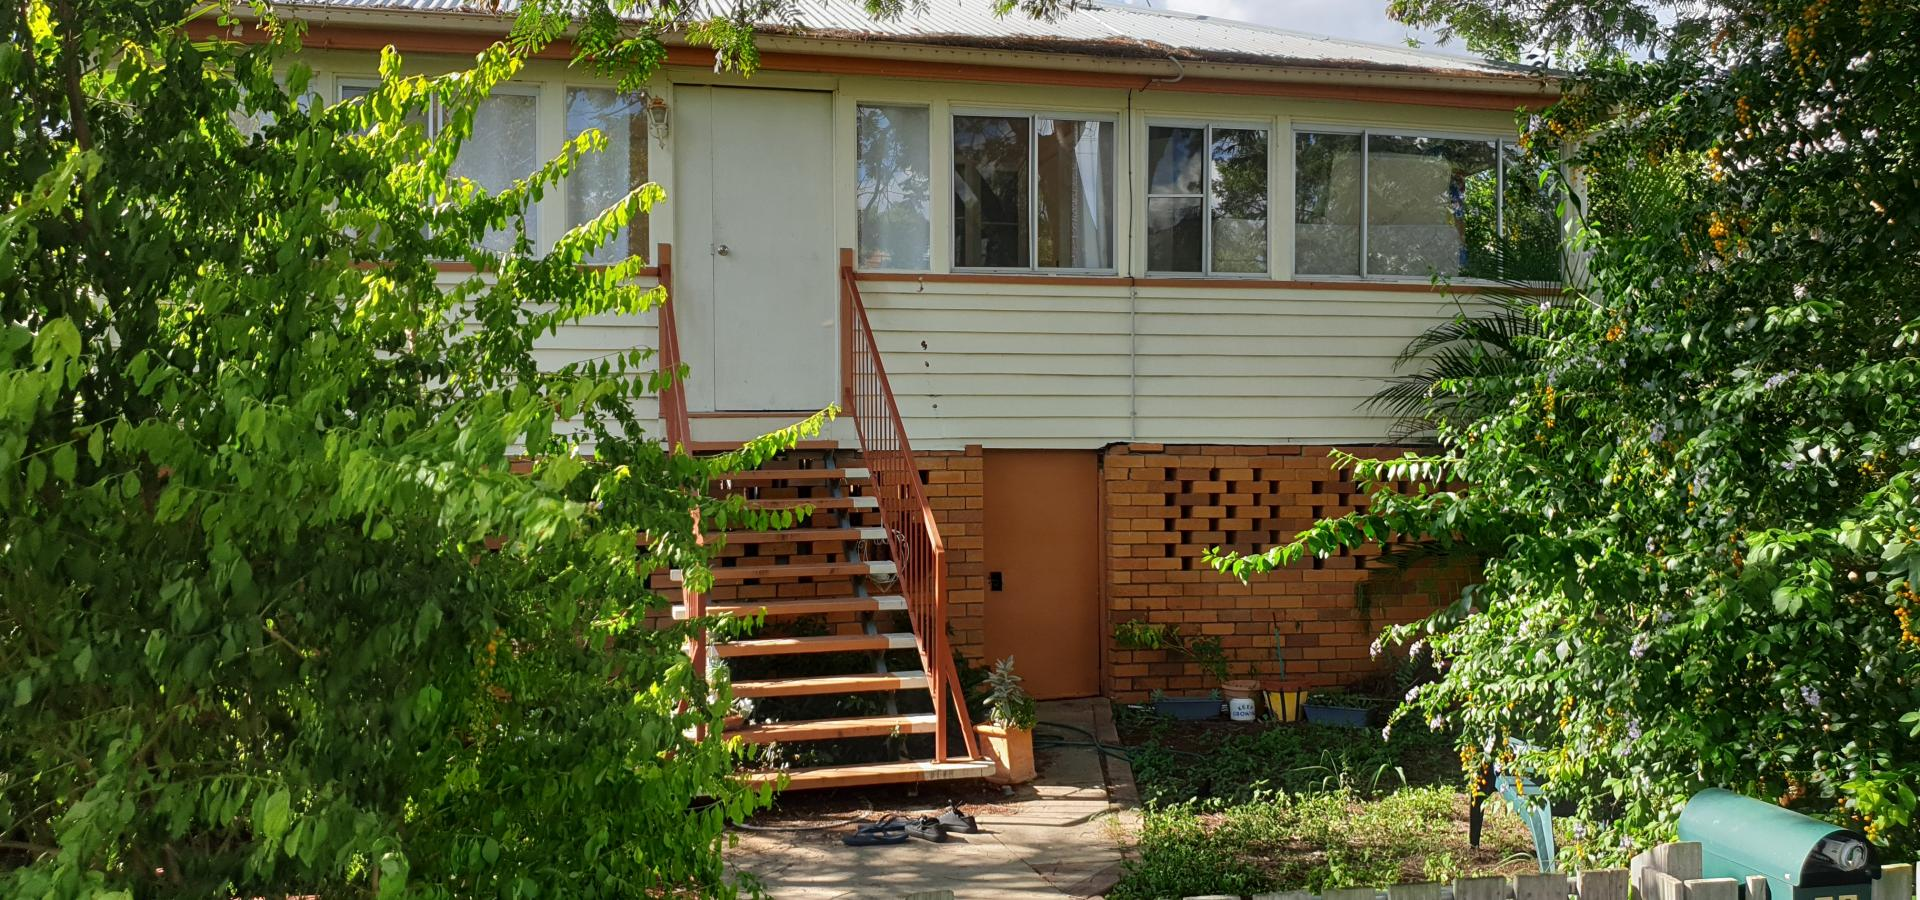 3 Bedrooms + Study in a Great Location